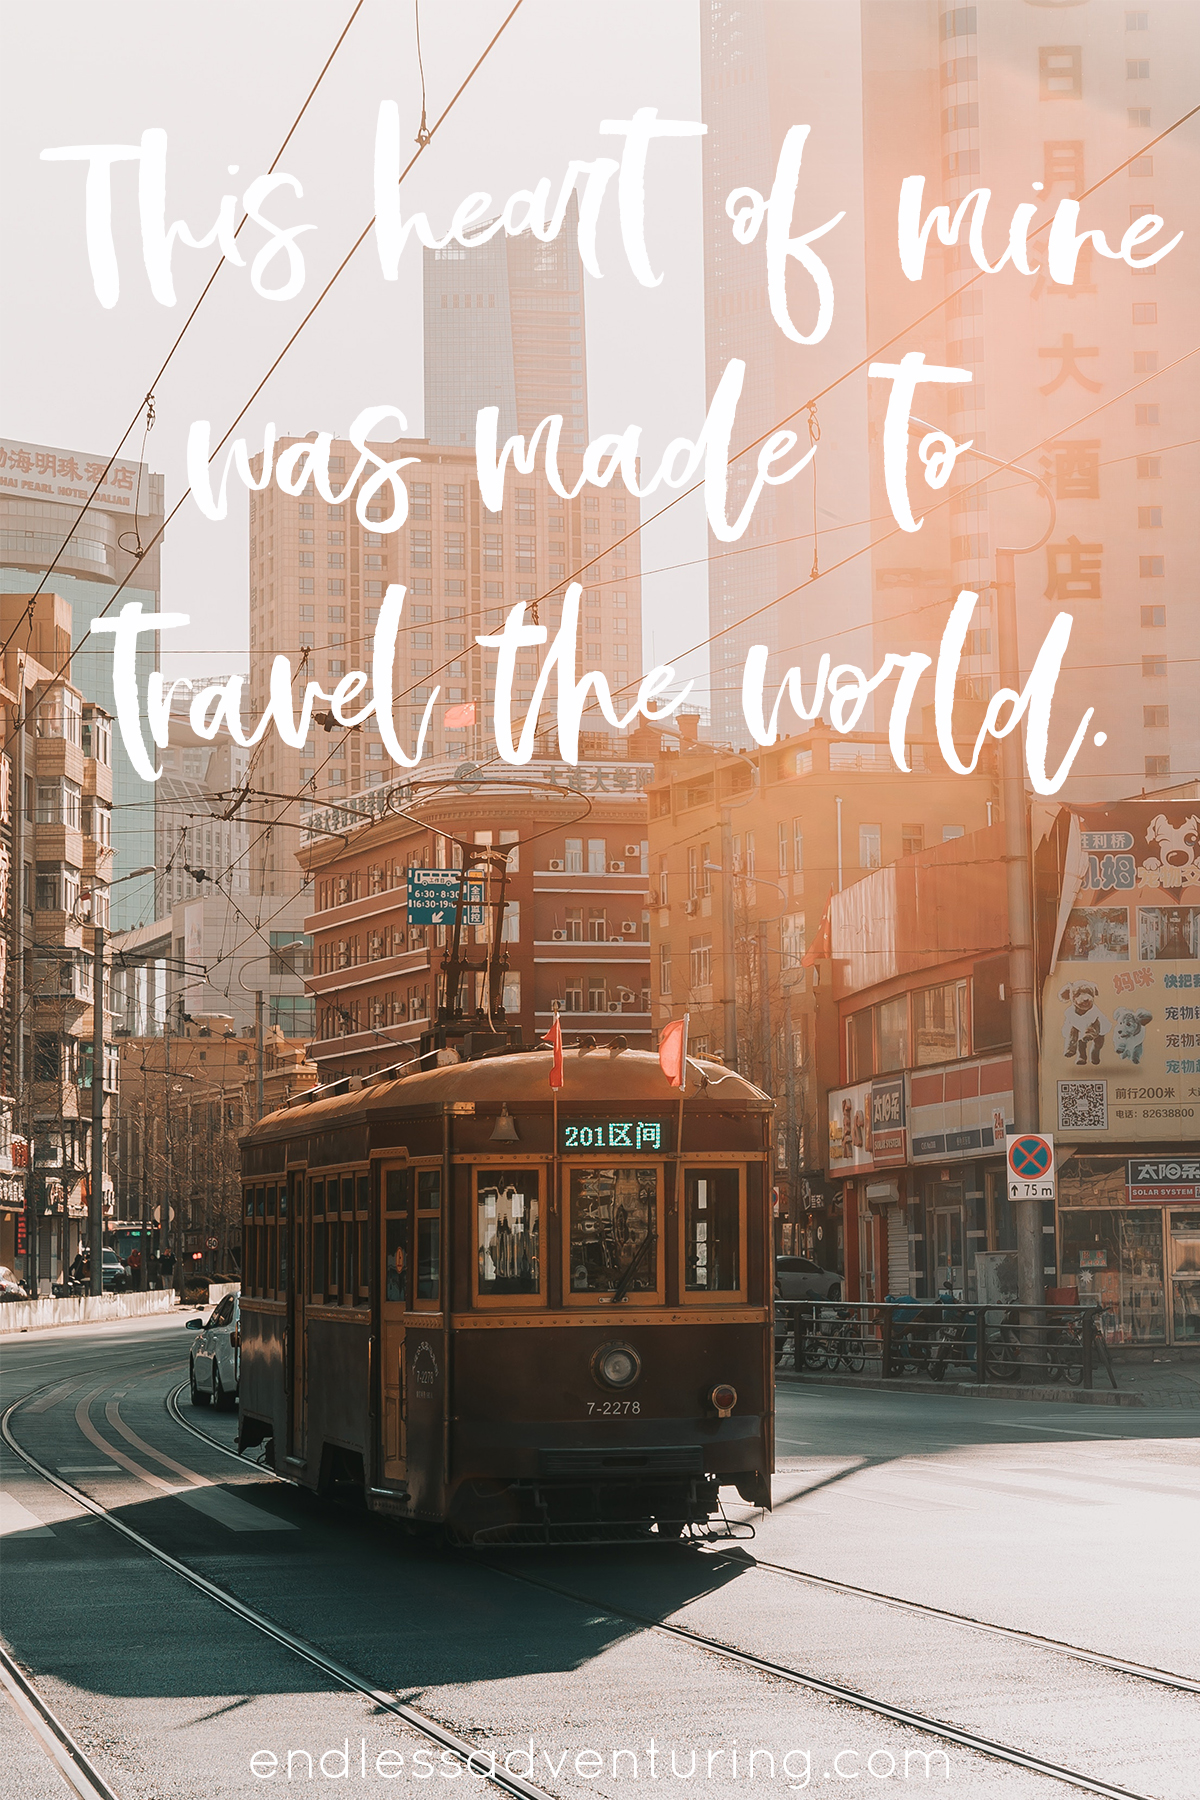 Adventure Quote - This Heart Of Mine Was Made To Travel The World